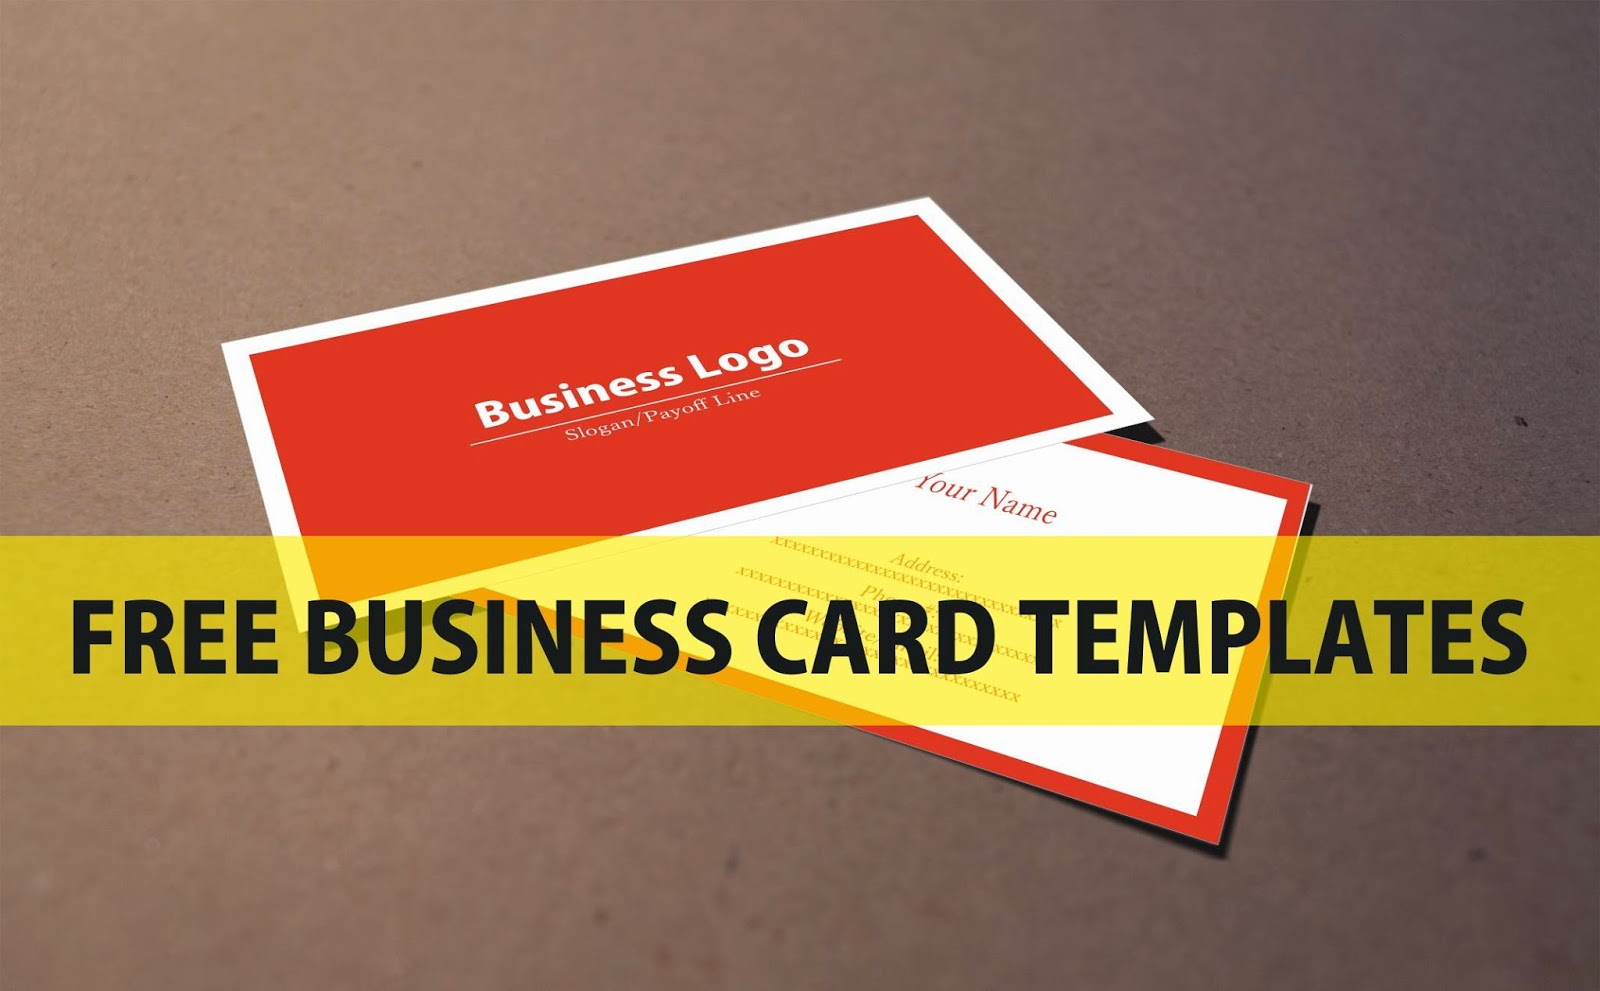 Free business card template freebusinesscardtemplatesg flashek Choice Image